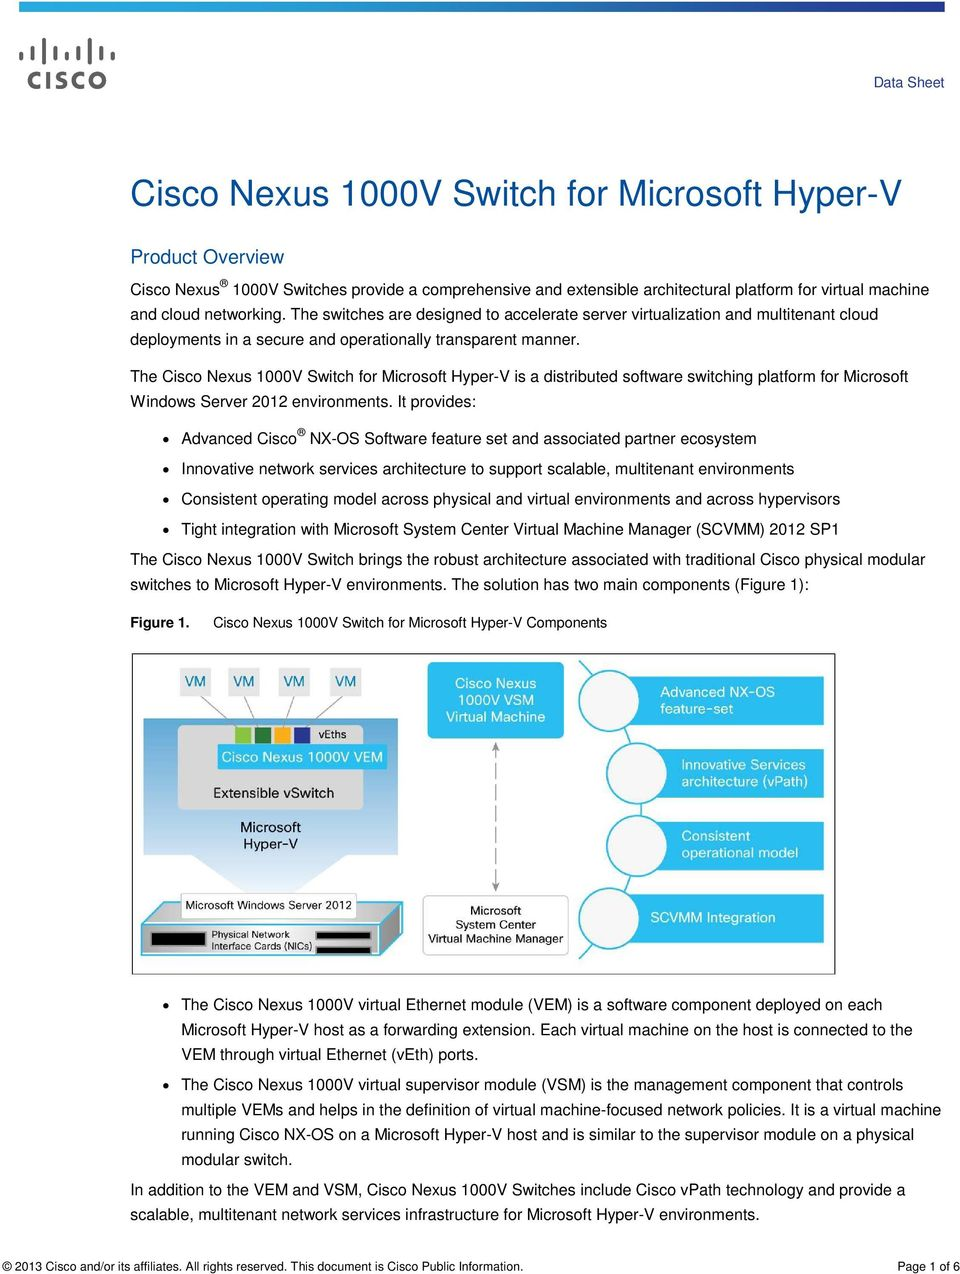 The Cisco Nexus 1000V Switch for Microsoft Hyper-V is a distributed software switching platform for Microsoft Windows Server 2012 environments.